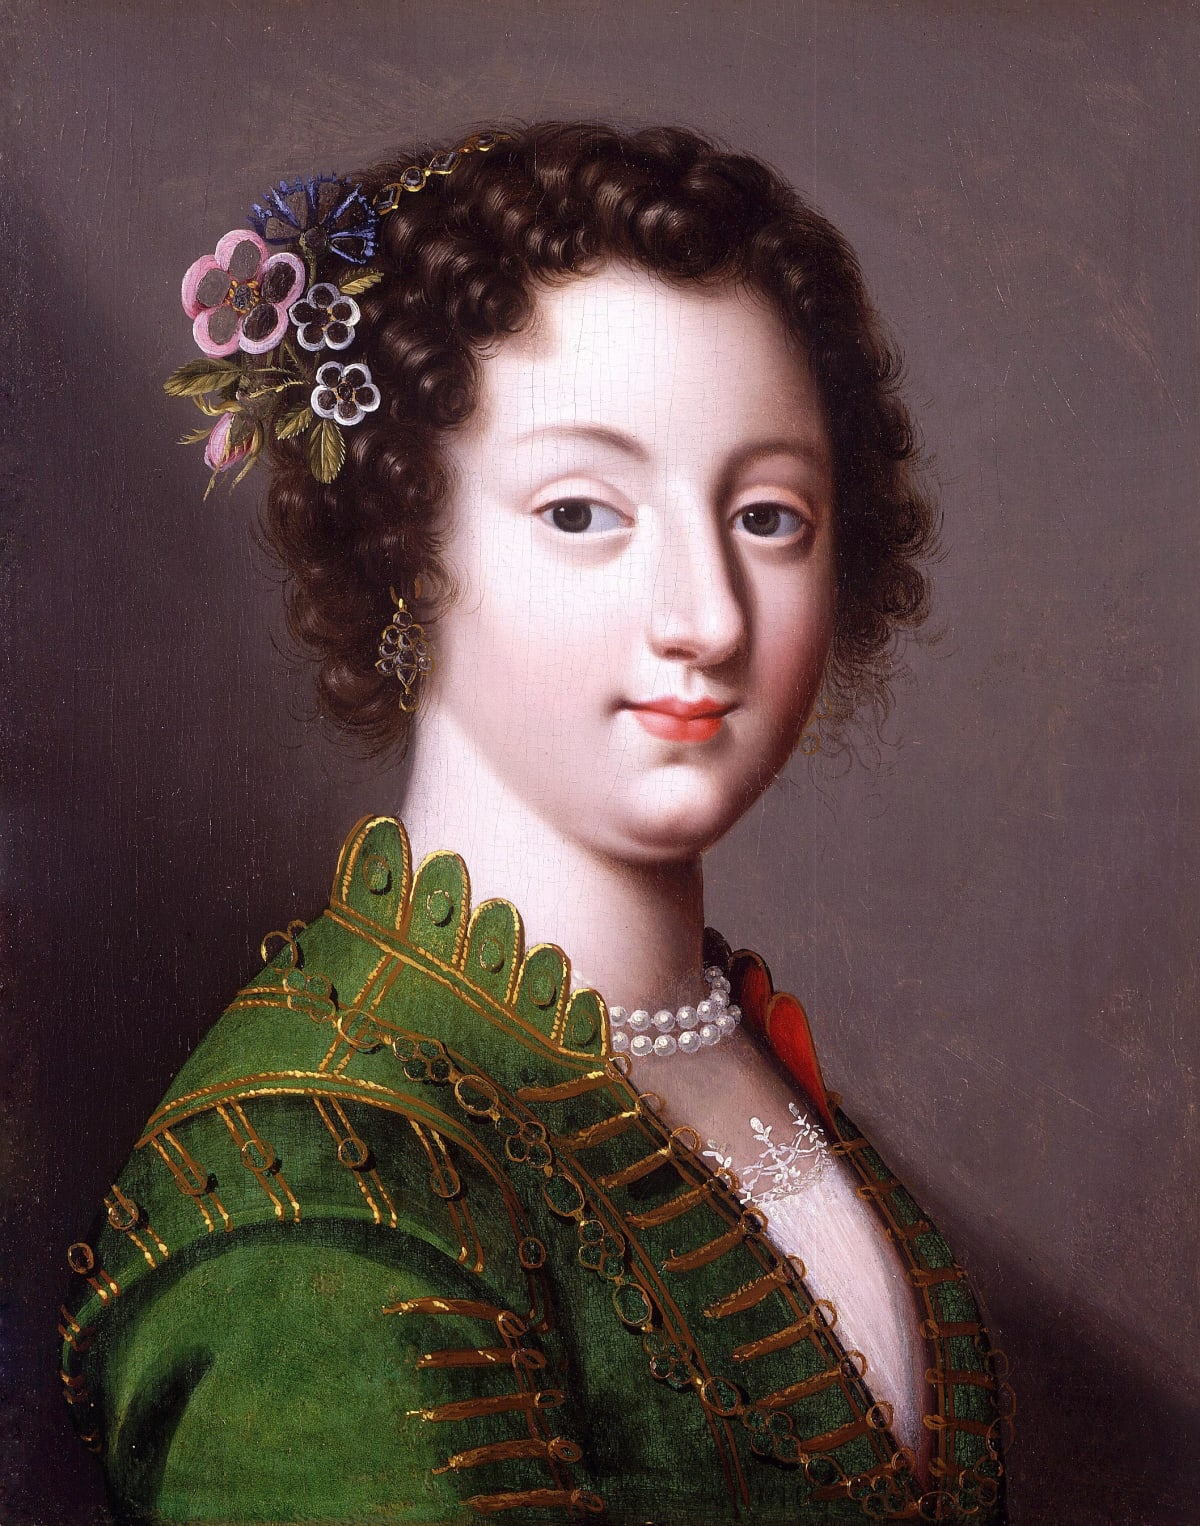 Claude Deruet (1588 – 1660) A Young French Noblewoman, circa 1625 - 1630 Oil on panel 13 ¼ x 10 ½ in (31.5 x 25.3 cm.)